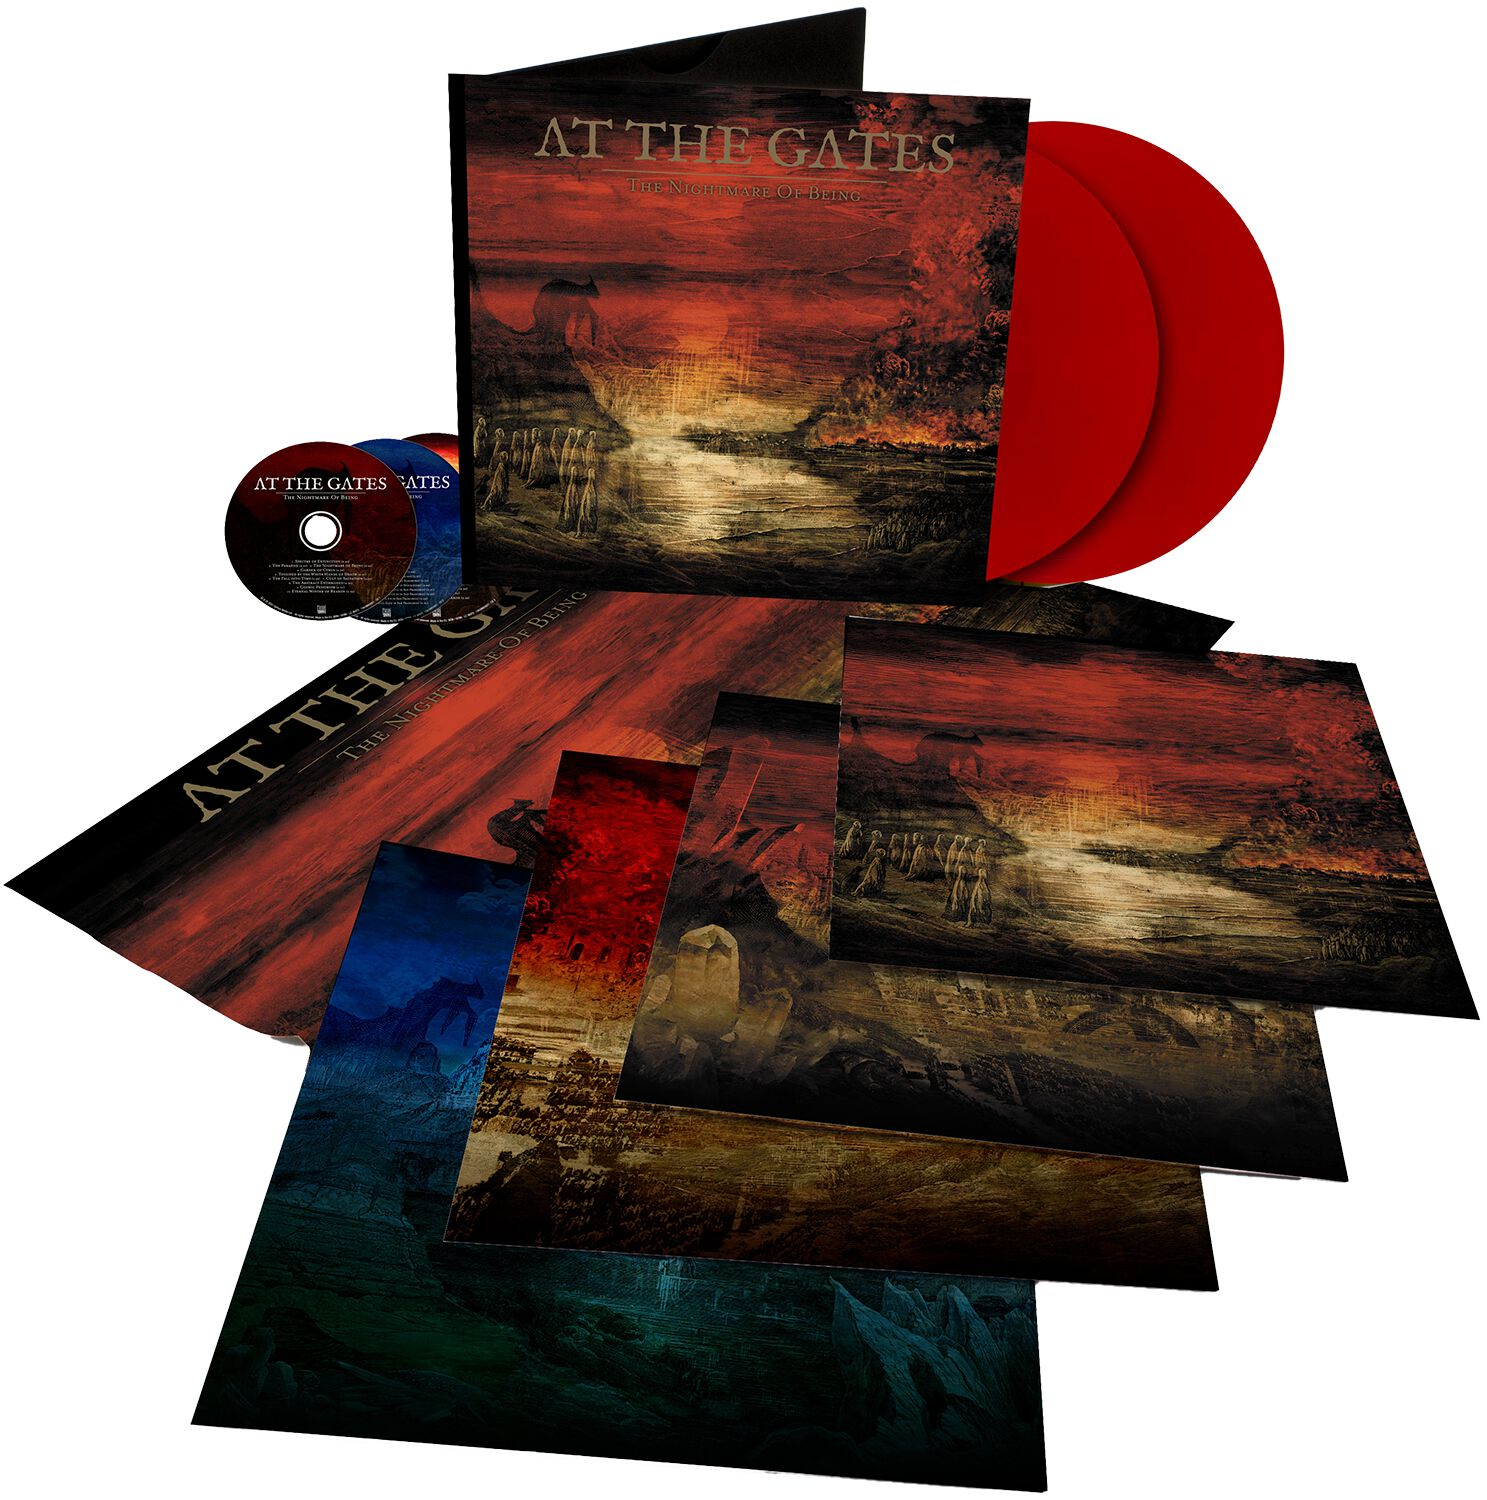 Image of At The Gates The nightmare of being 2-LP & 3-CD Standard